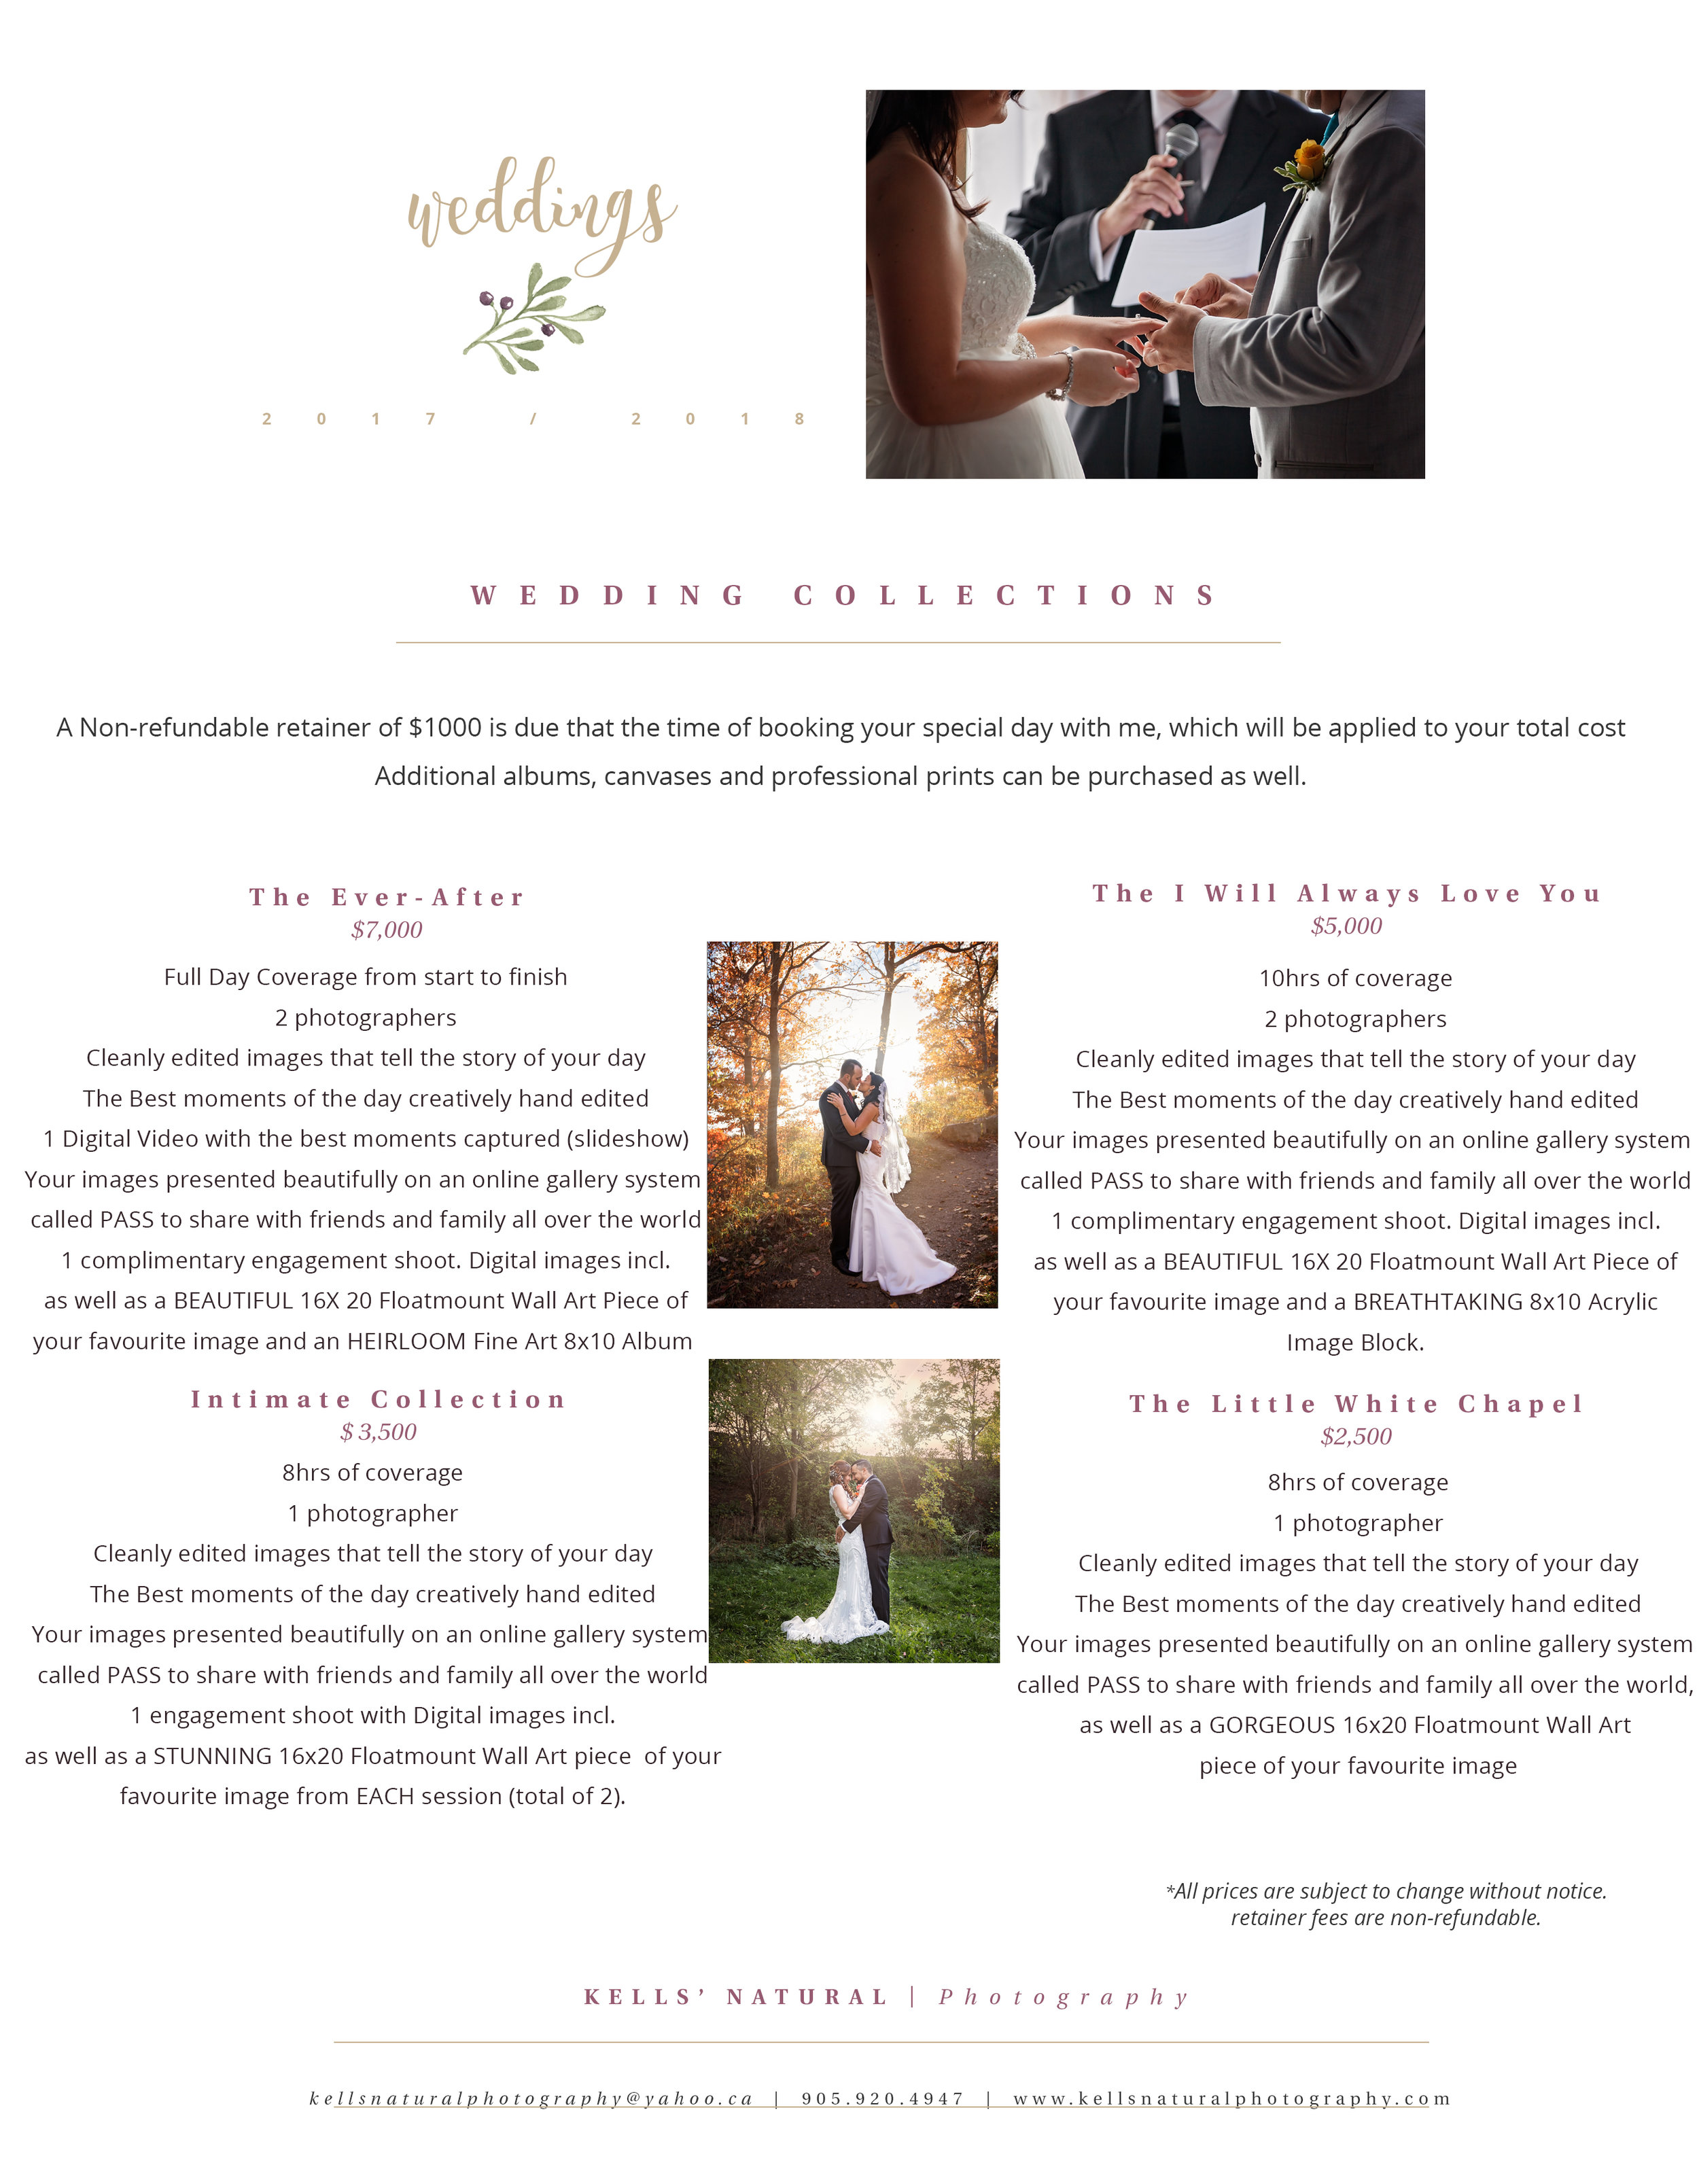 1514PS_COLLECTIONS Wedding.jpg